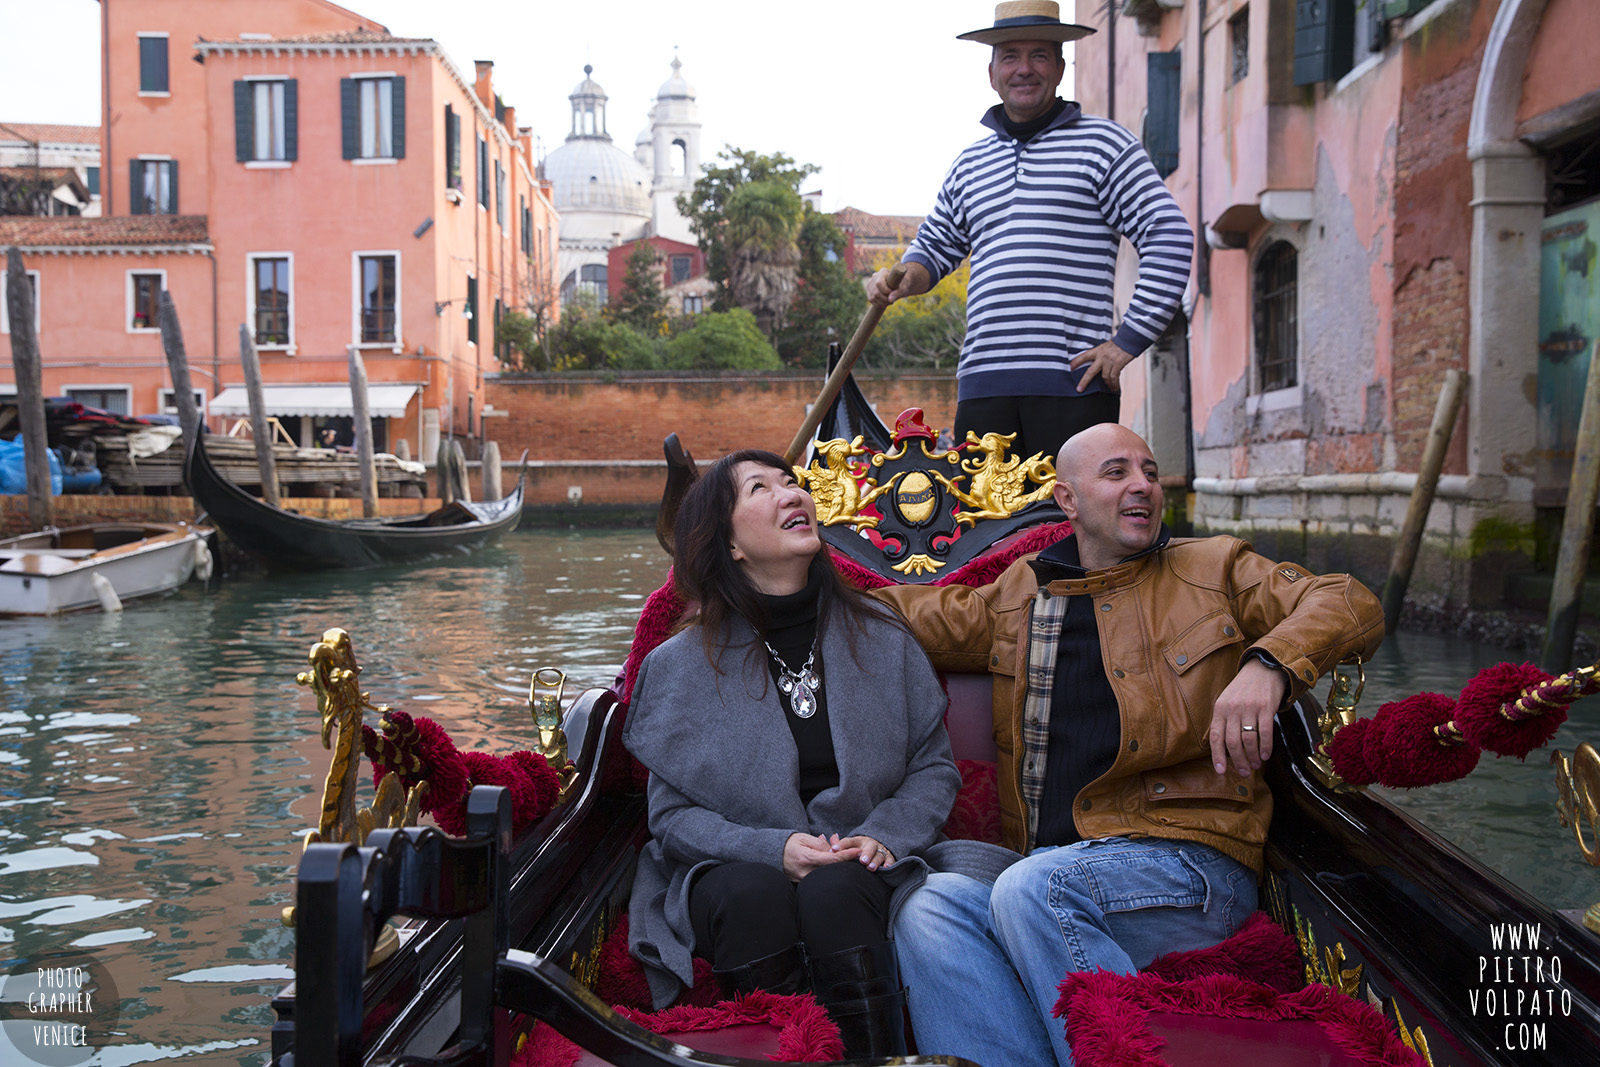 photographer-in-venice-for-photoshoot-of-couple-wedding-anniversary-pictures-20161122_02